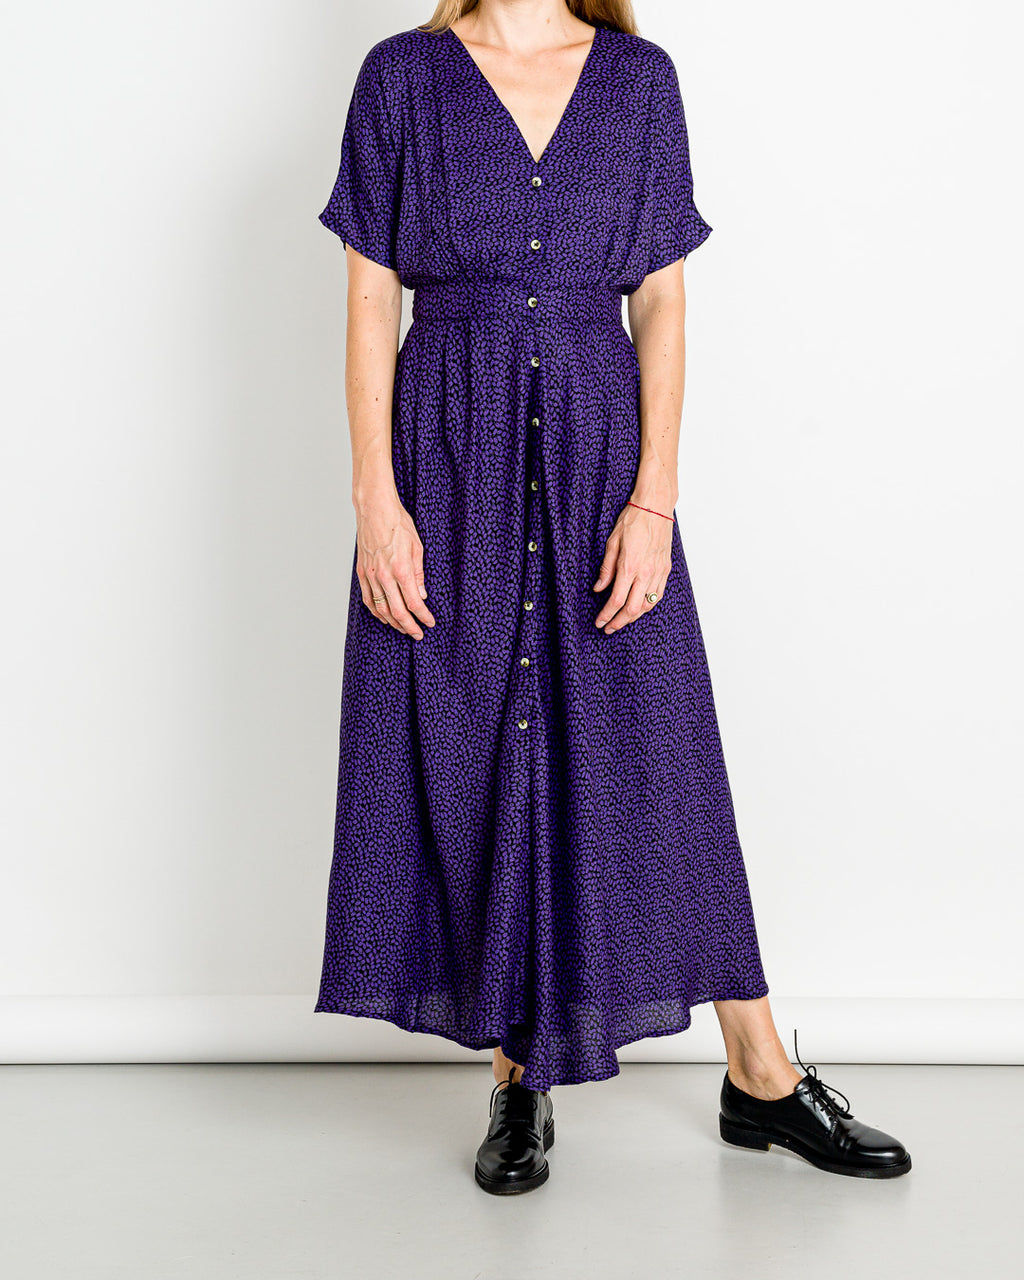 Leon&Harper // Kleid Ravel Grape